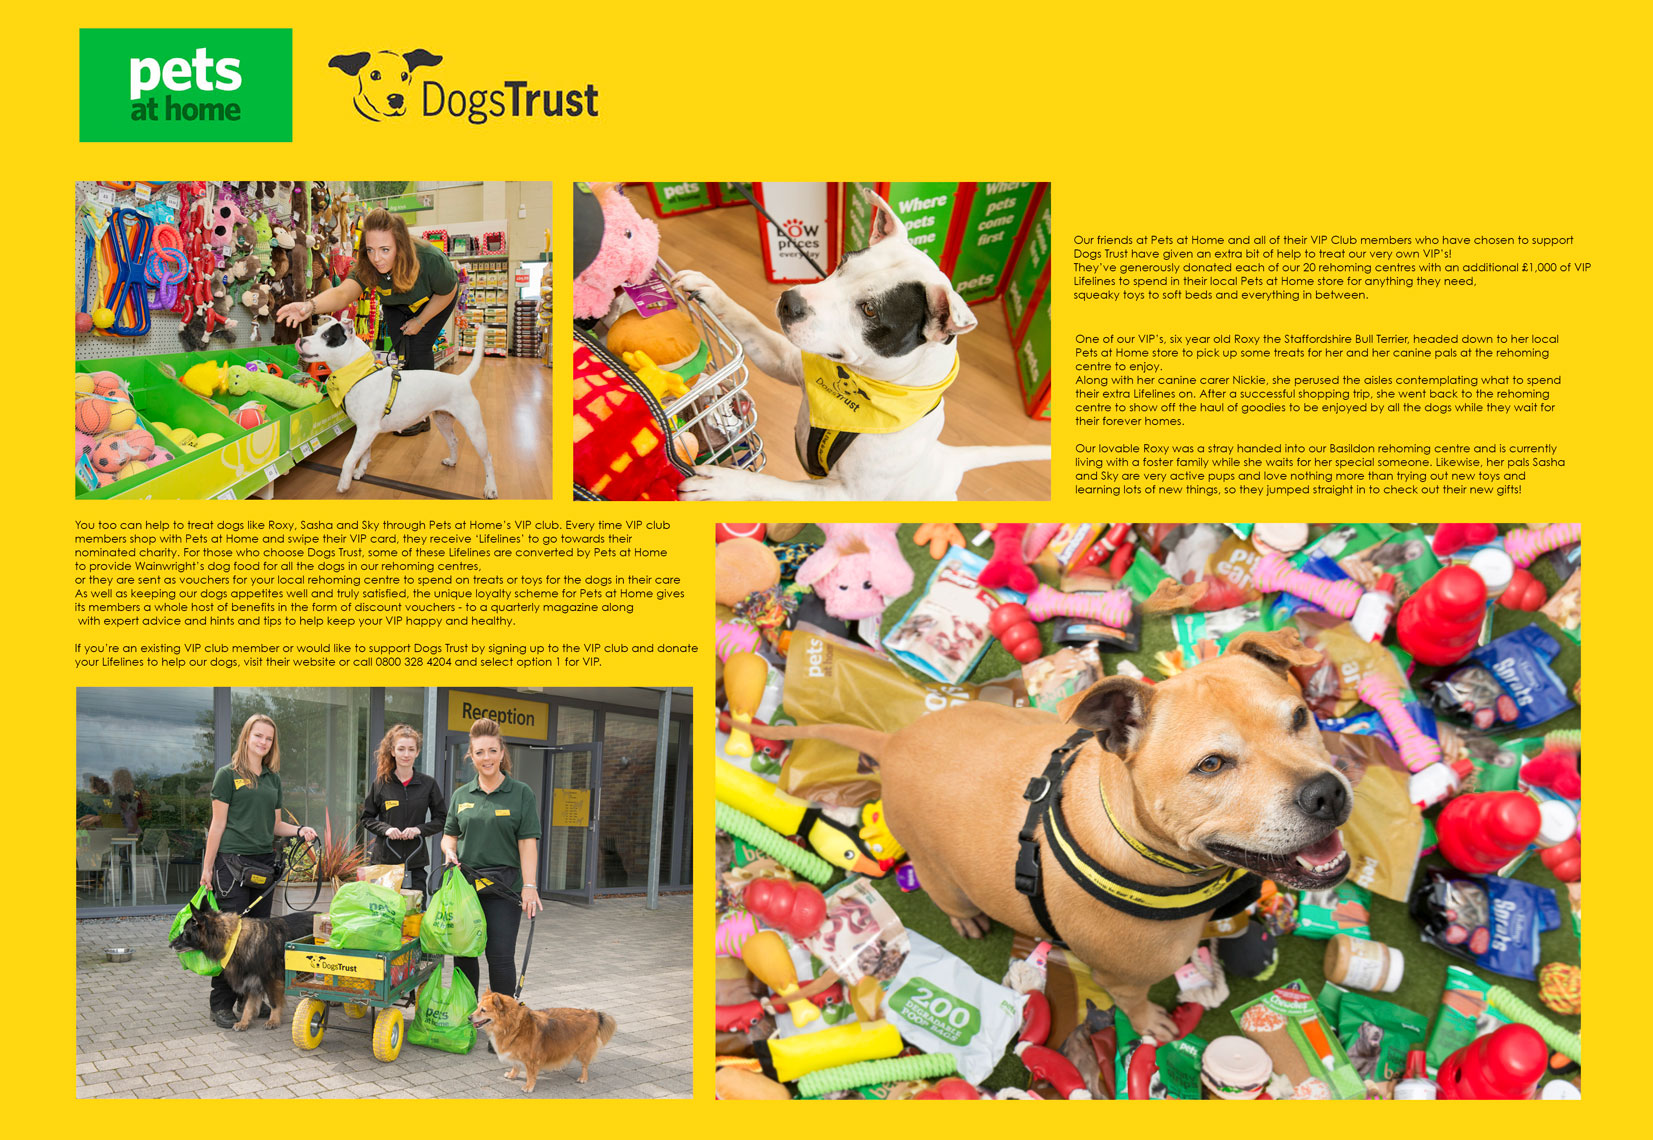 Dogs-trust-Pets-at-Home